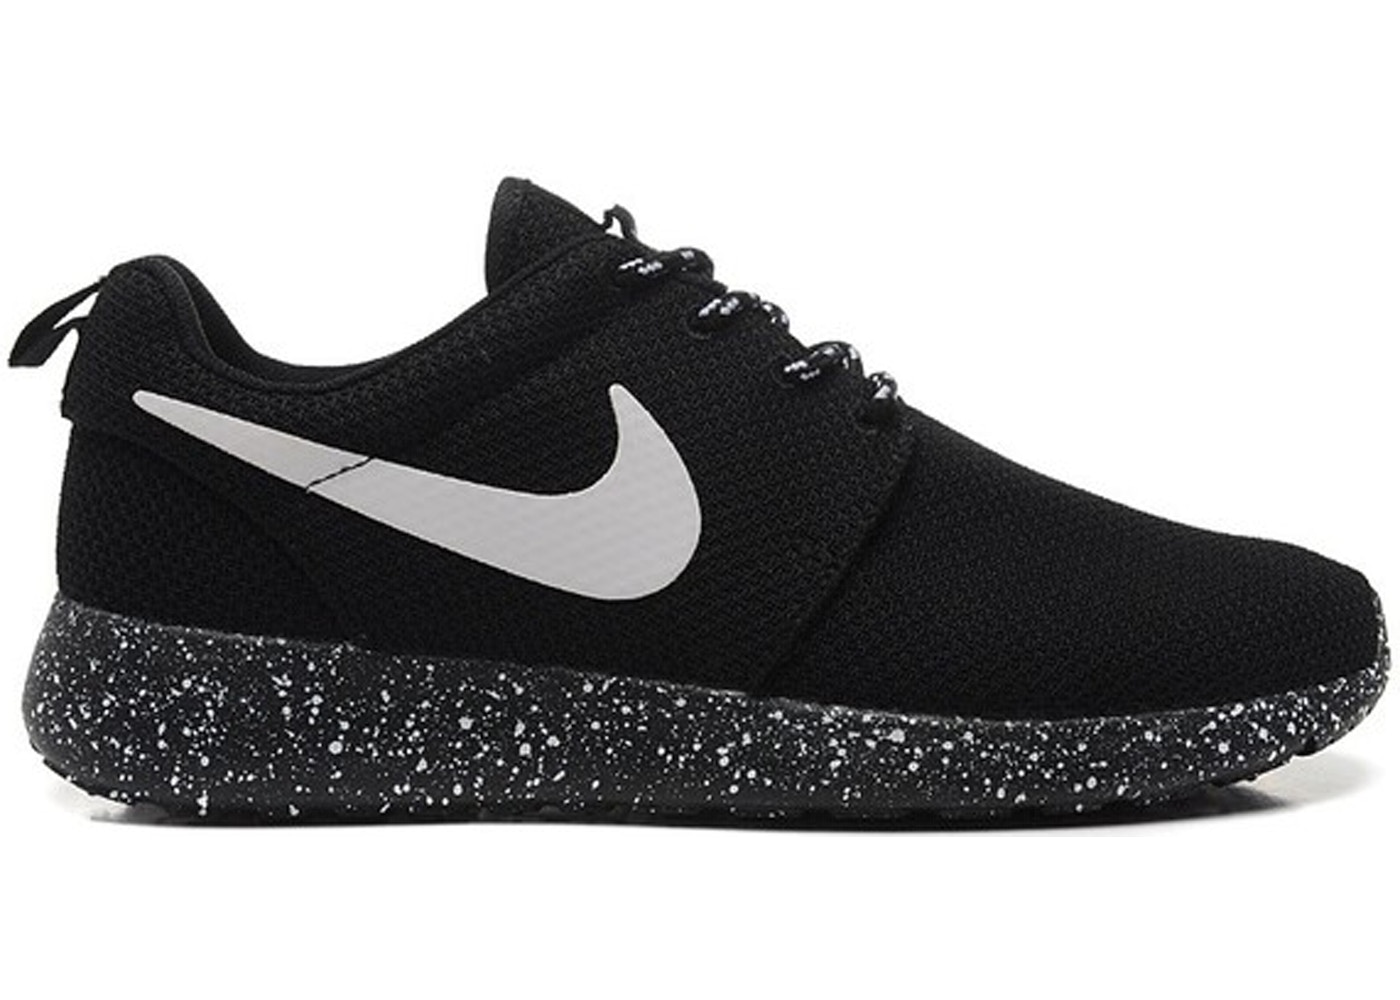 a174584591ae Nike Roshe Run Black White (Speckled Sole) - 511882-011